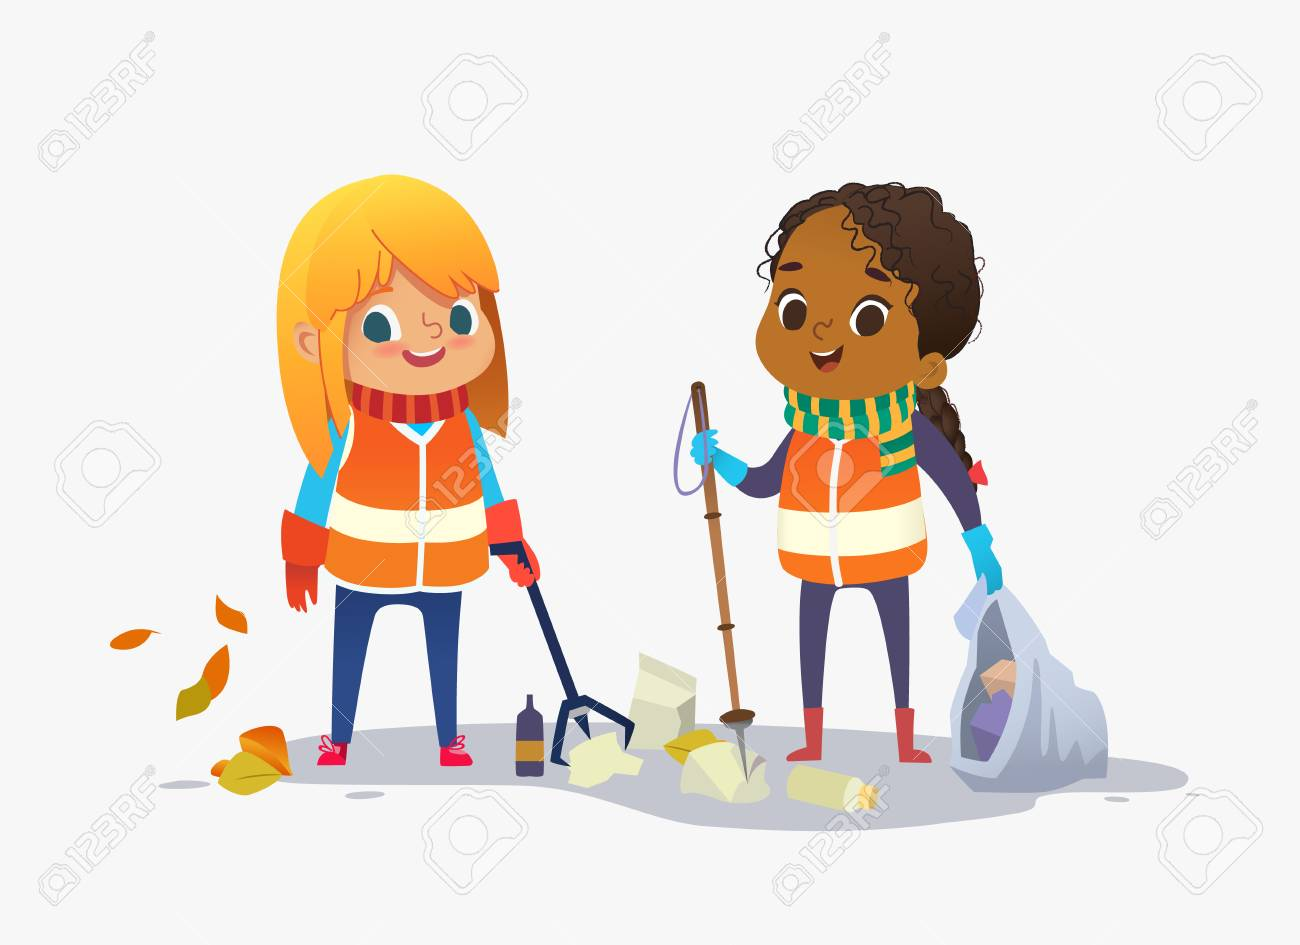 Two girls wearing unoform collect rubbish for recycling at park. Kids gathering plastic bottles and garbage for recycling. Boy throws litter into bin. Early childhood education.Vector. Isolated. - 115115430